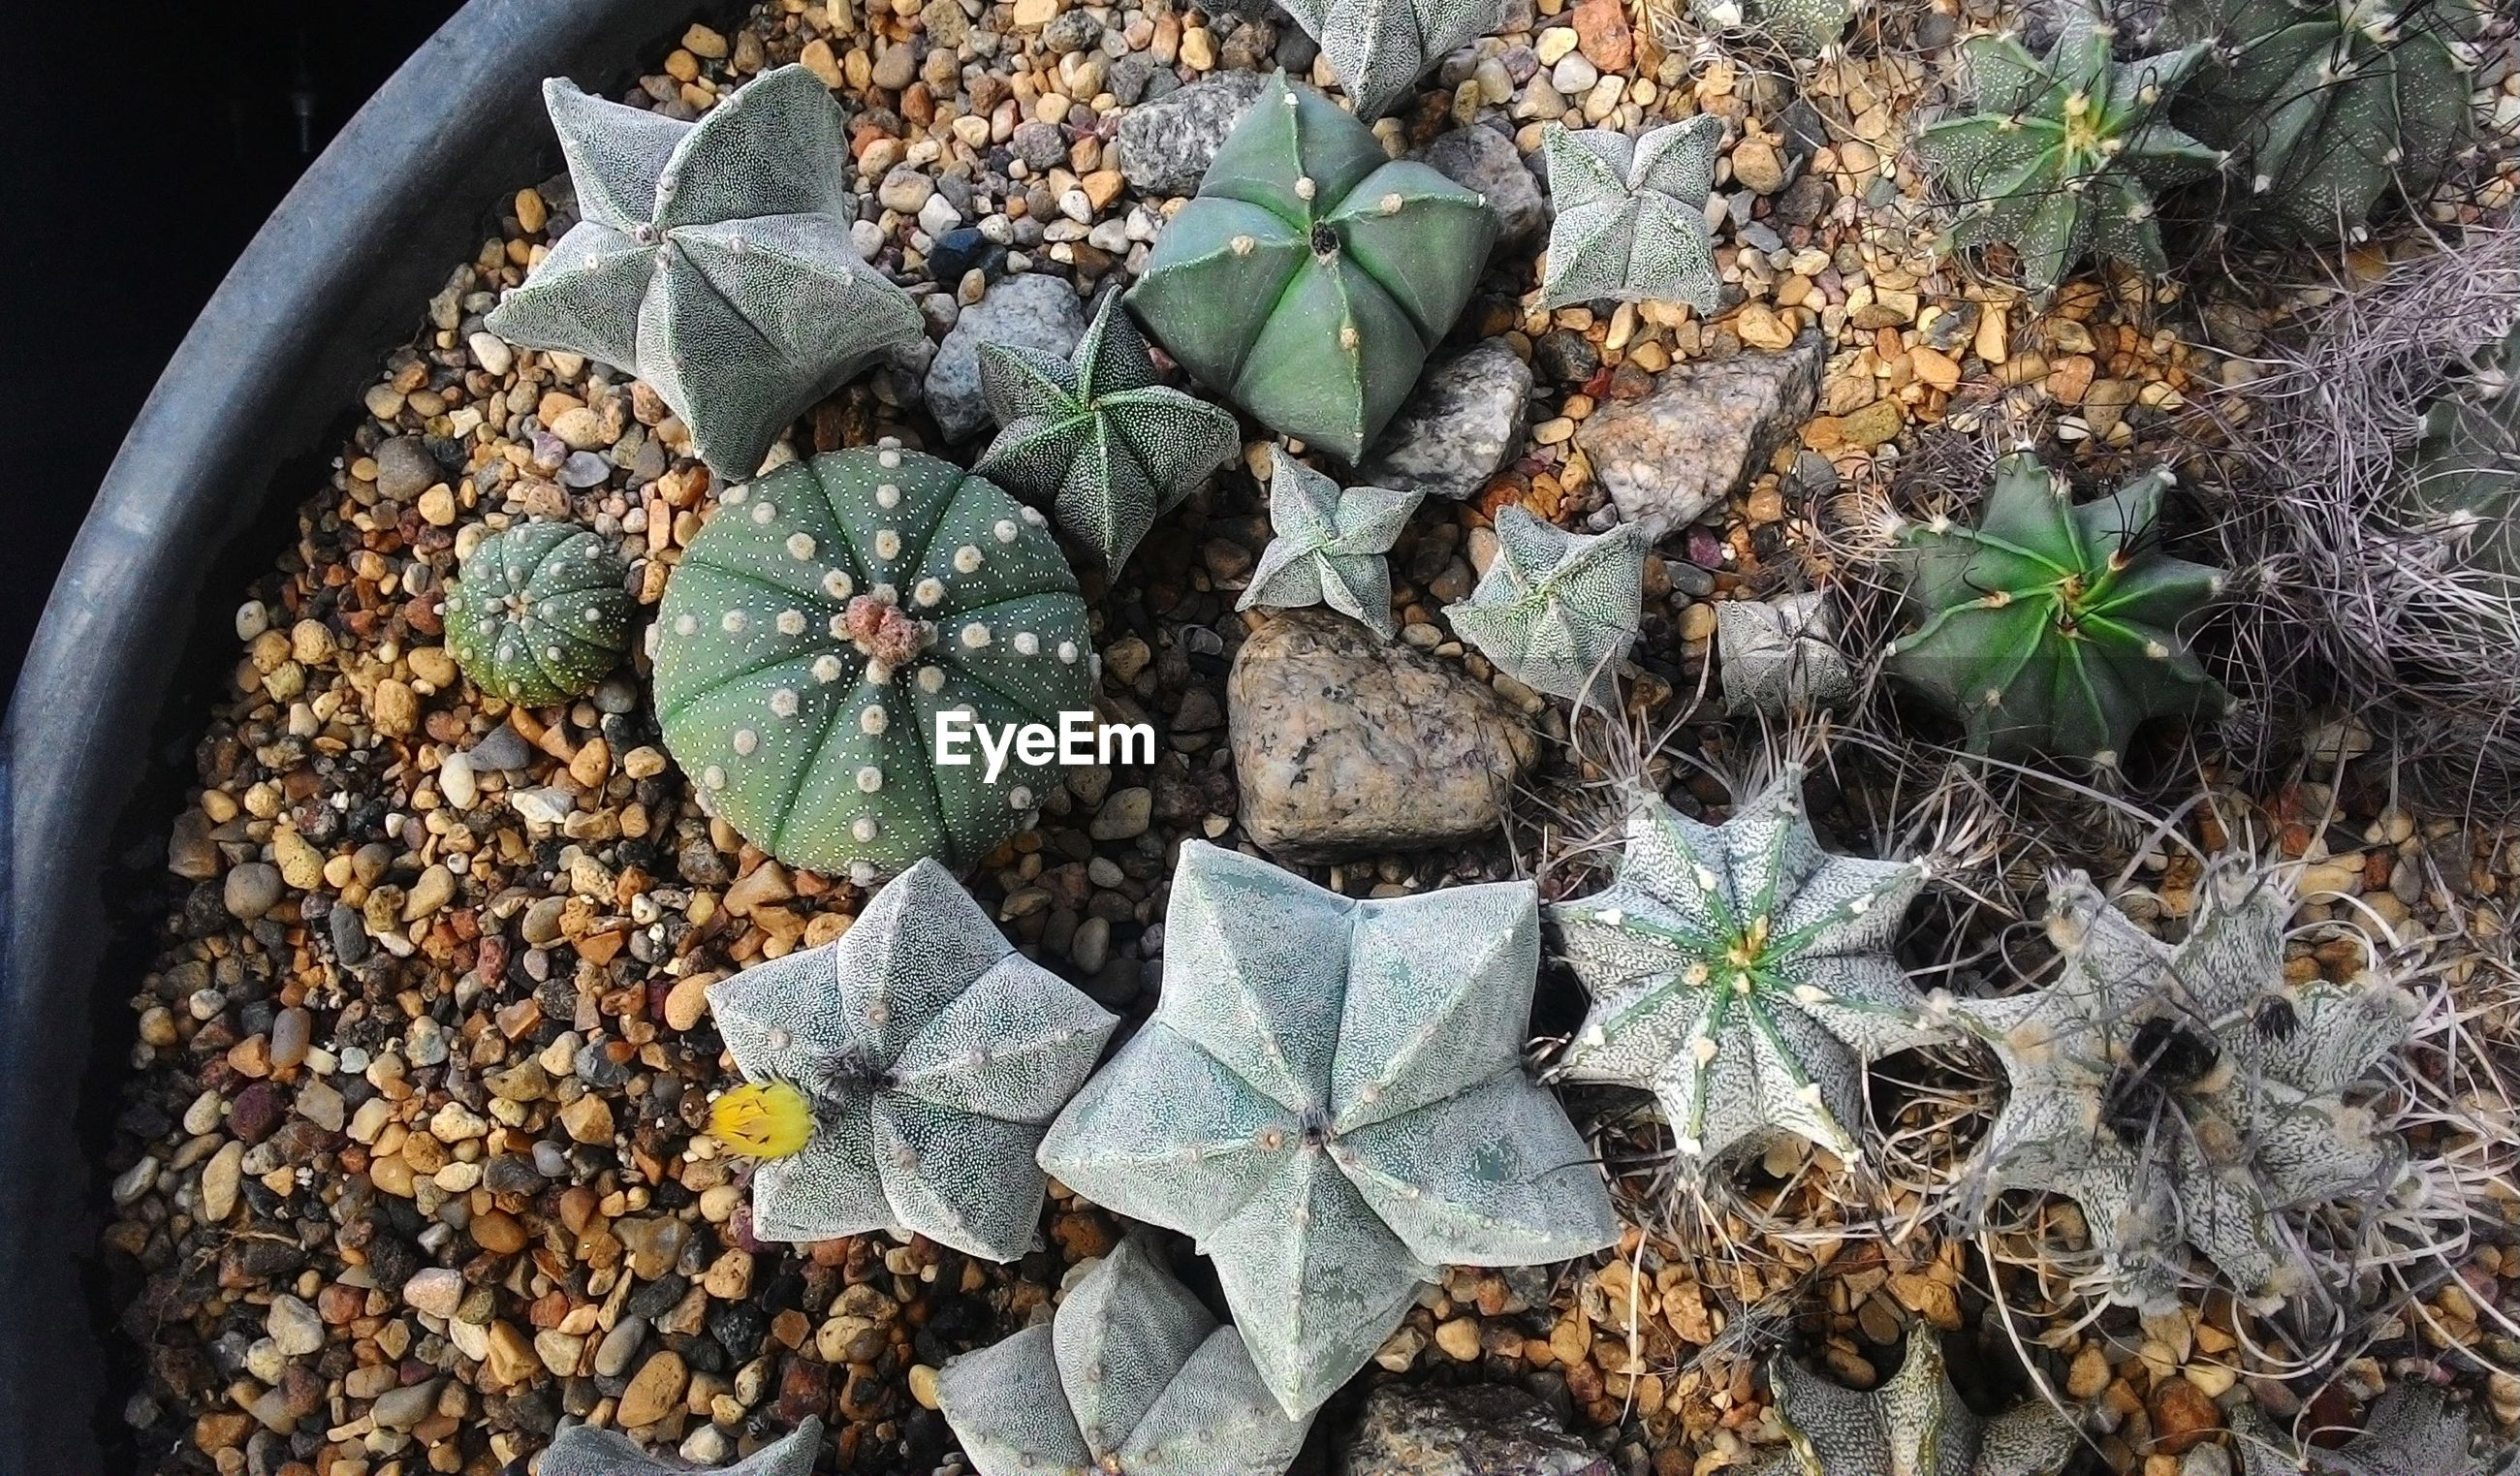 High angle view of potted plant sukkulents and cactuses